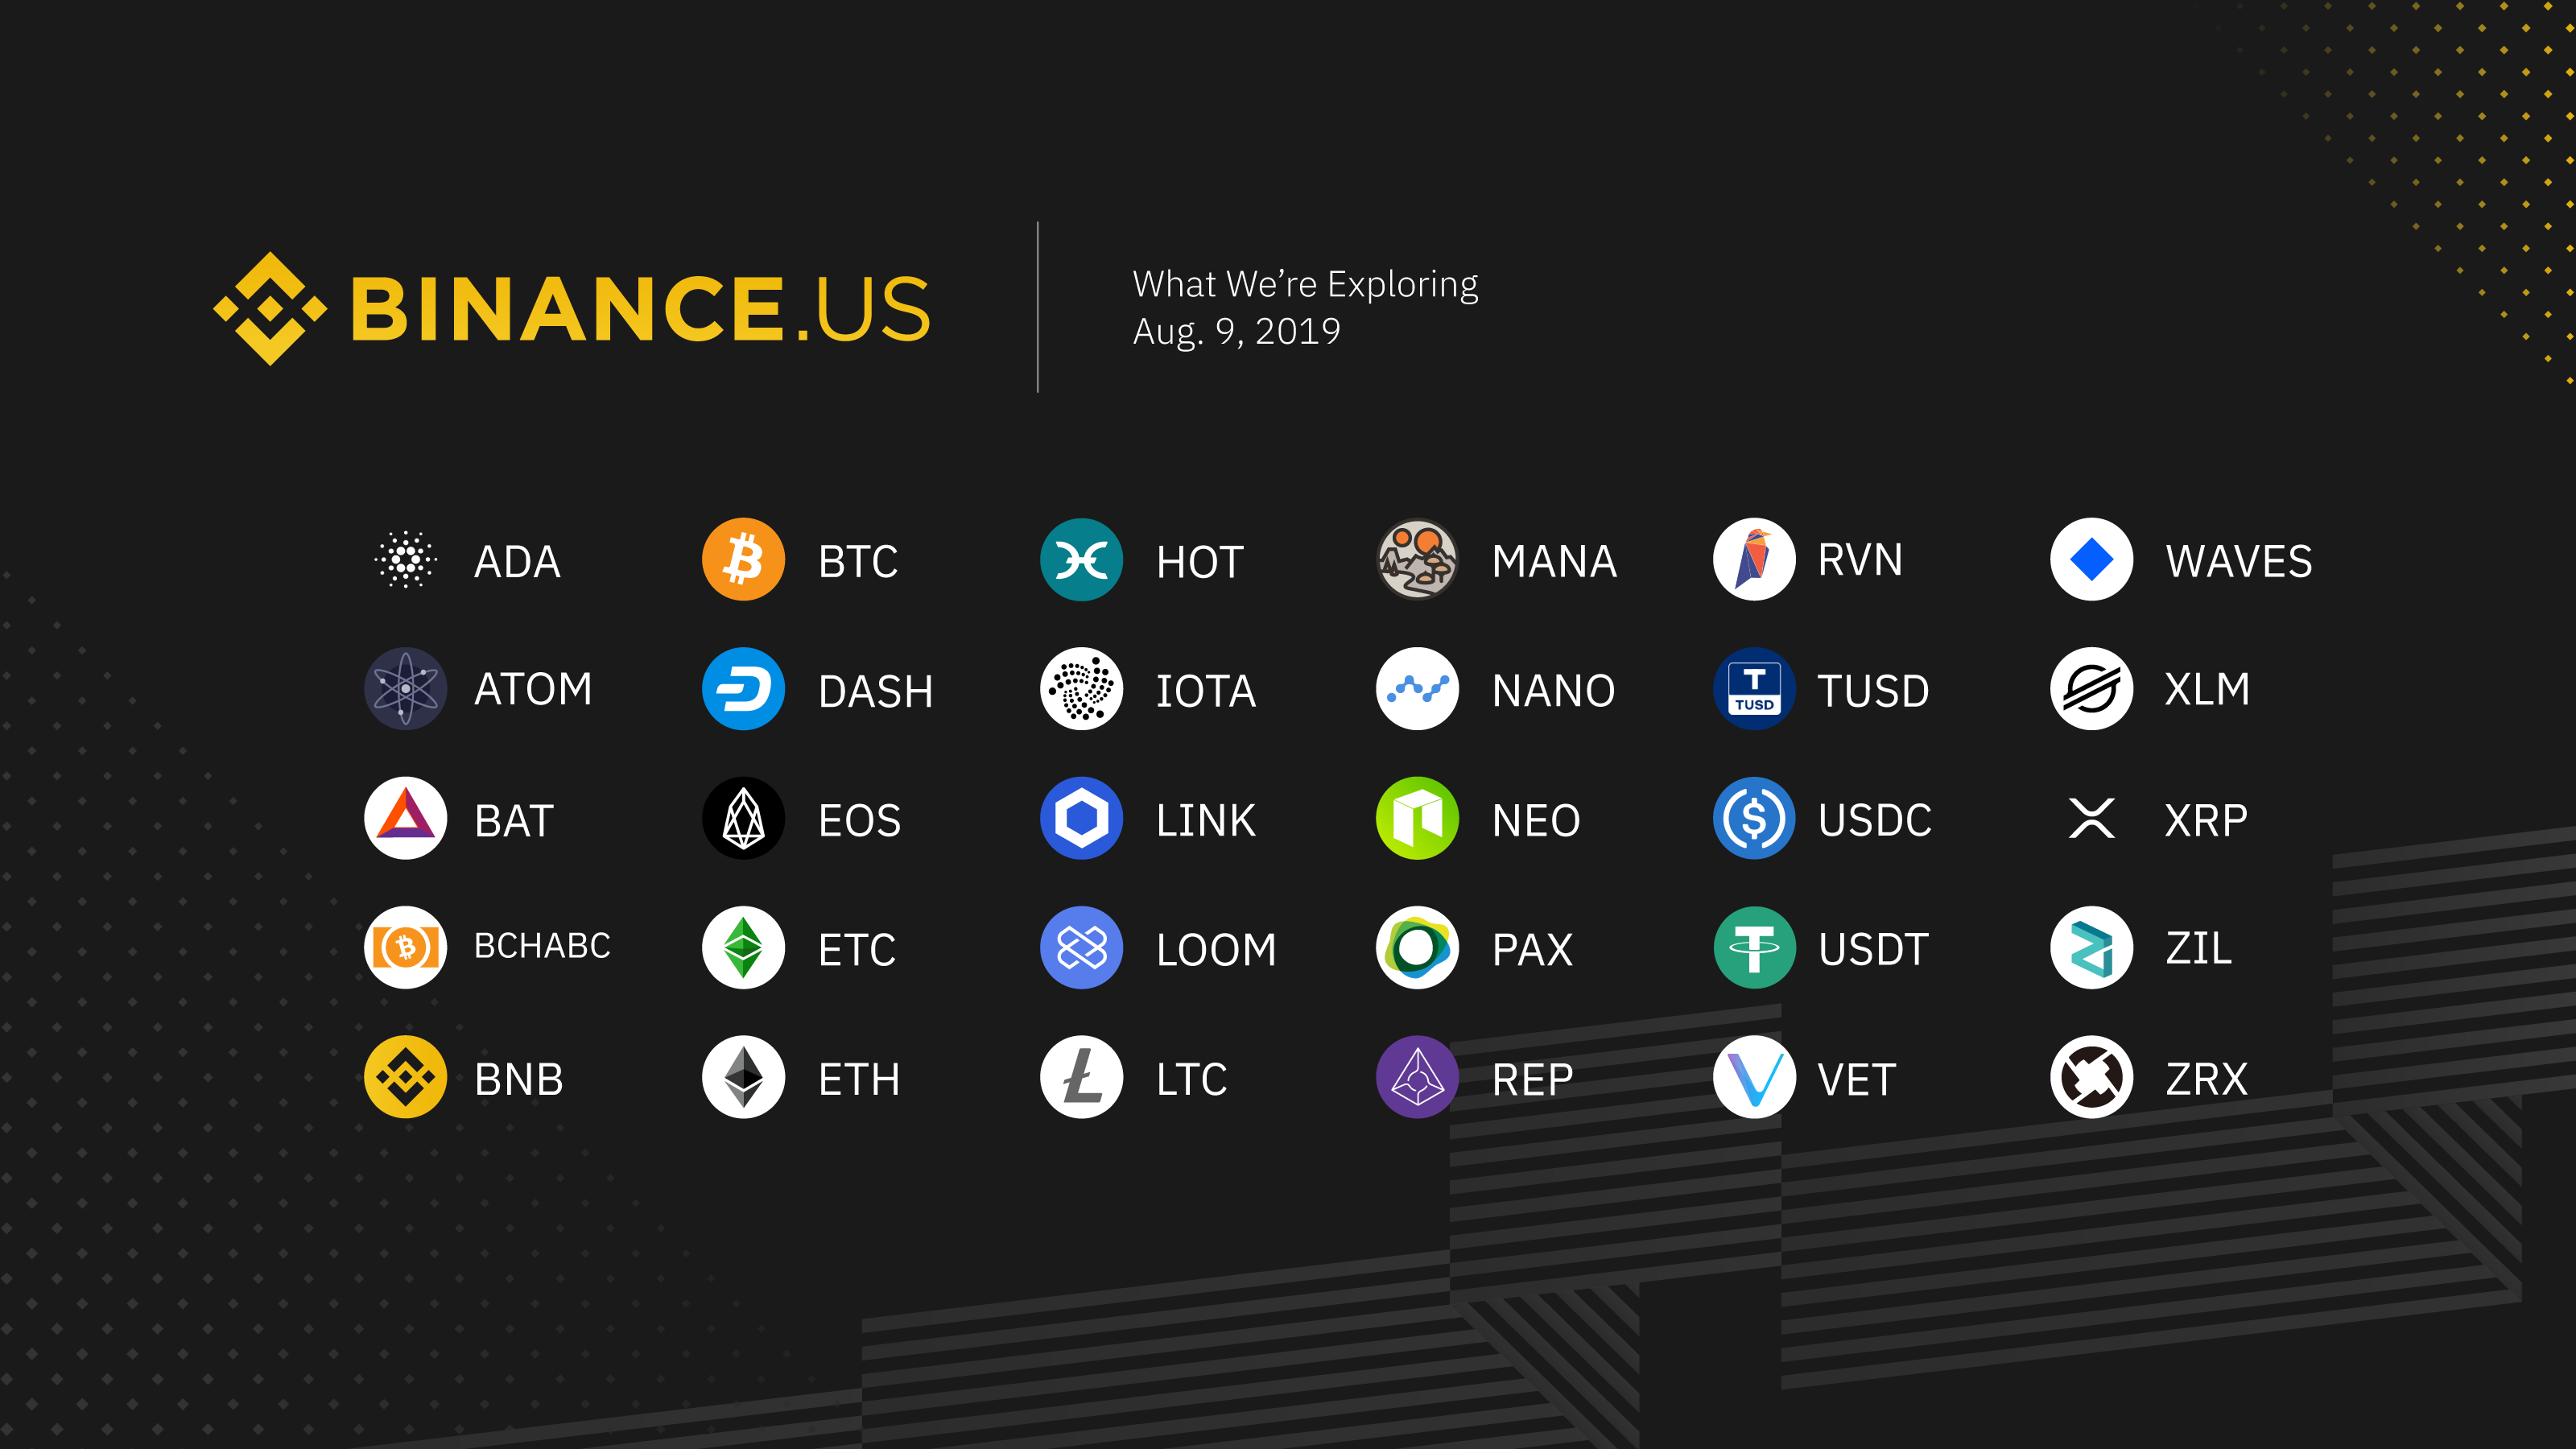 Cryptocurrencies under consideration for Binance.US